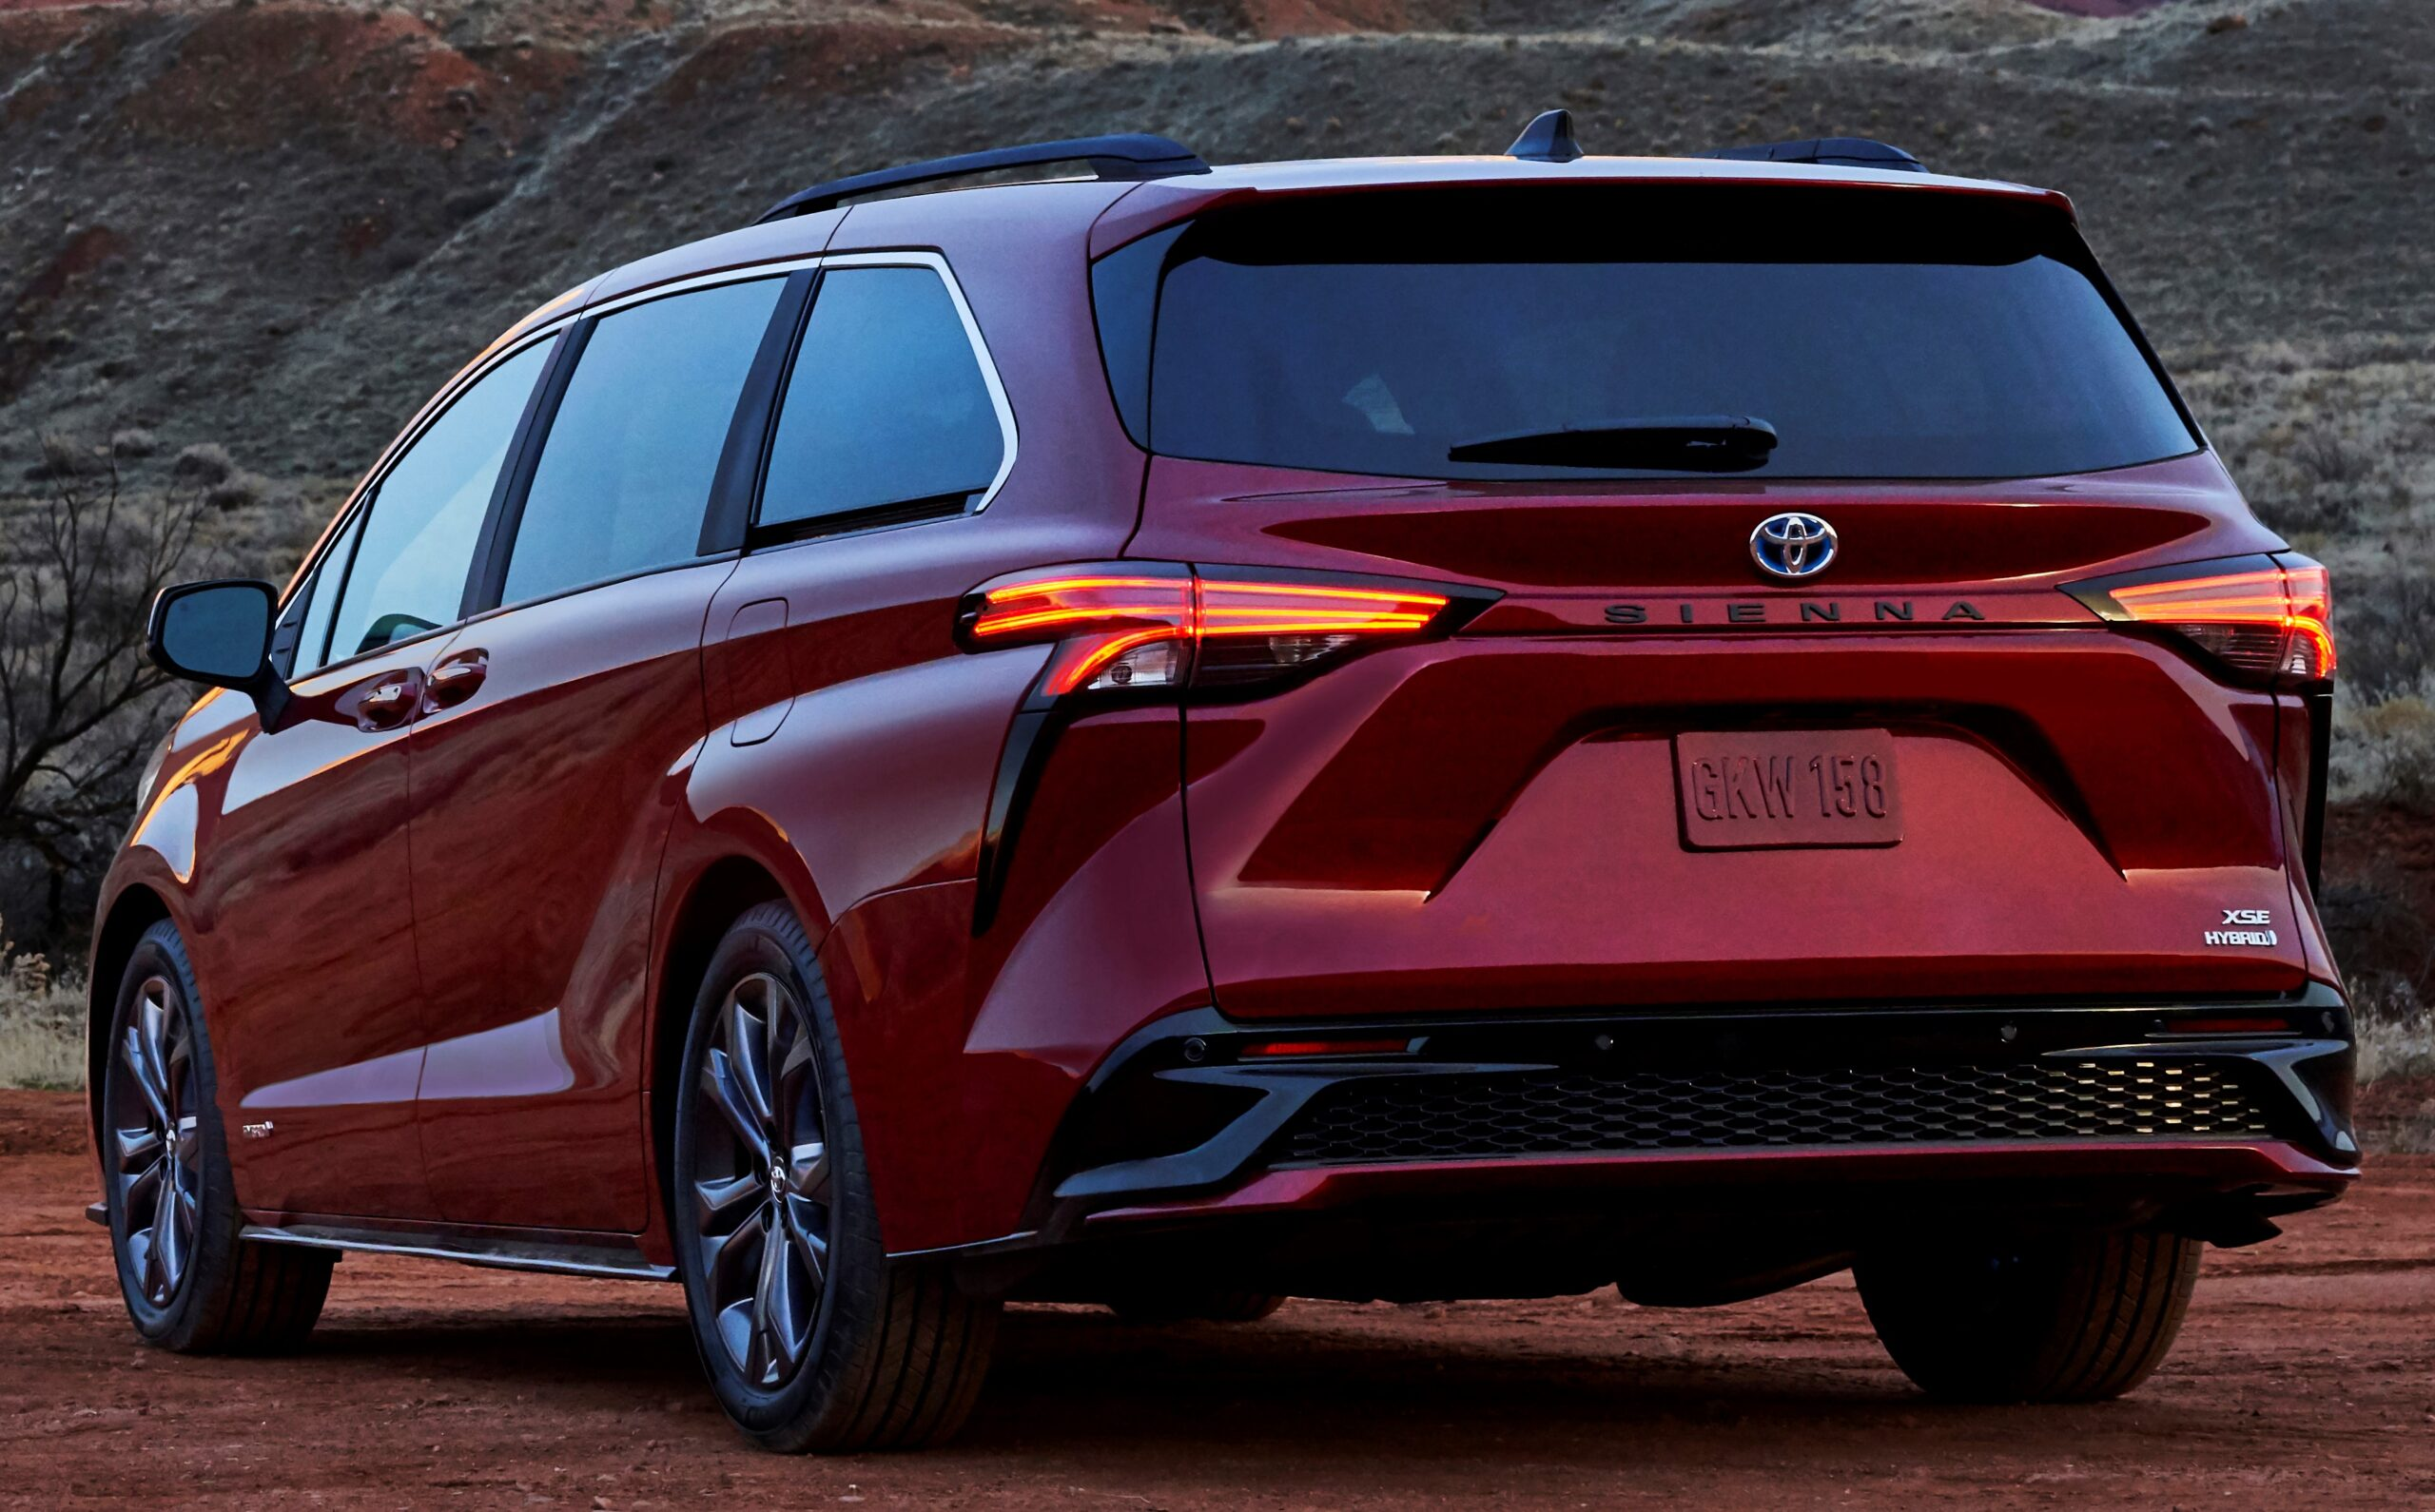 A view of the Sienna's rear end